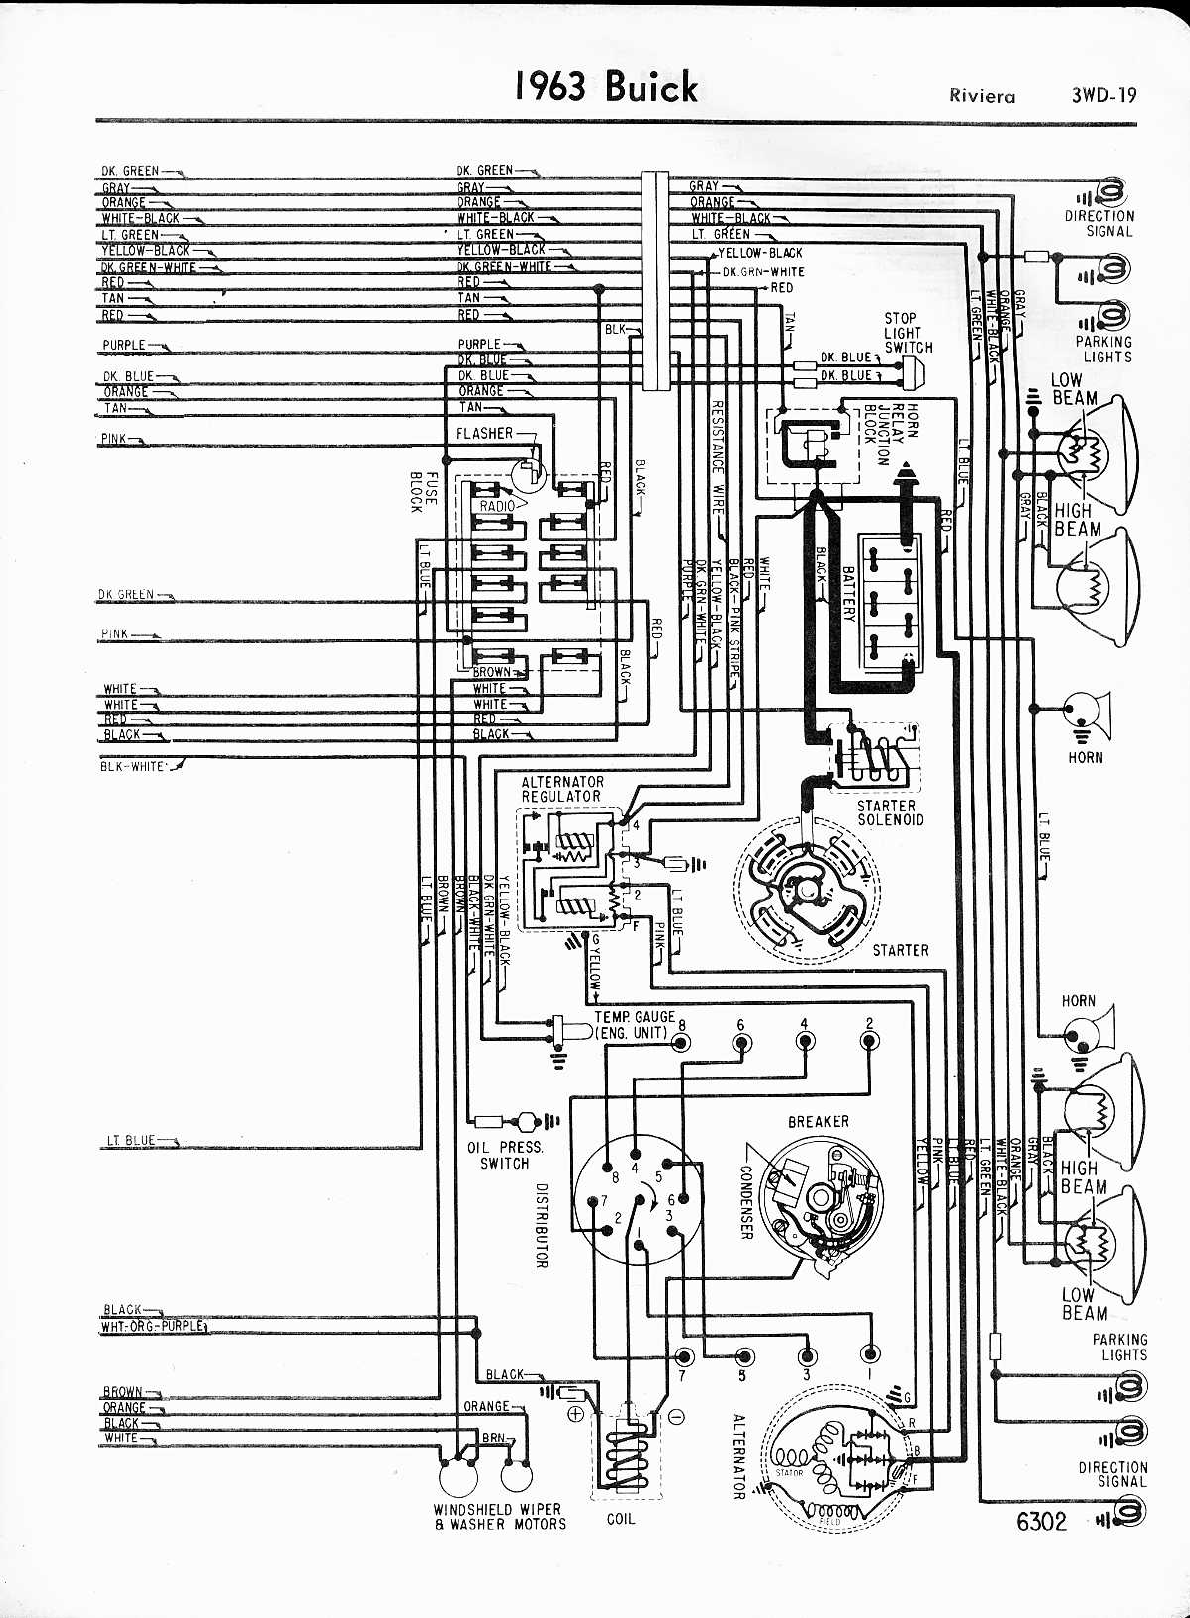 Buick Navigation Wiring Diagram Schematics Diagrams 1995 Ktm Riviera 1963 1965 Misc Documents Pdf Rh Manuals Co 1194 Skylark Wire Lesabre Engine